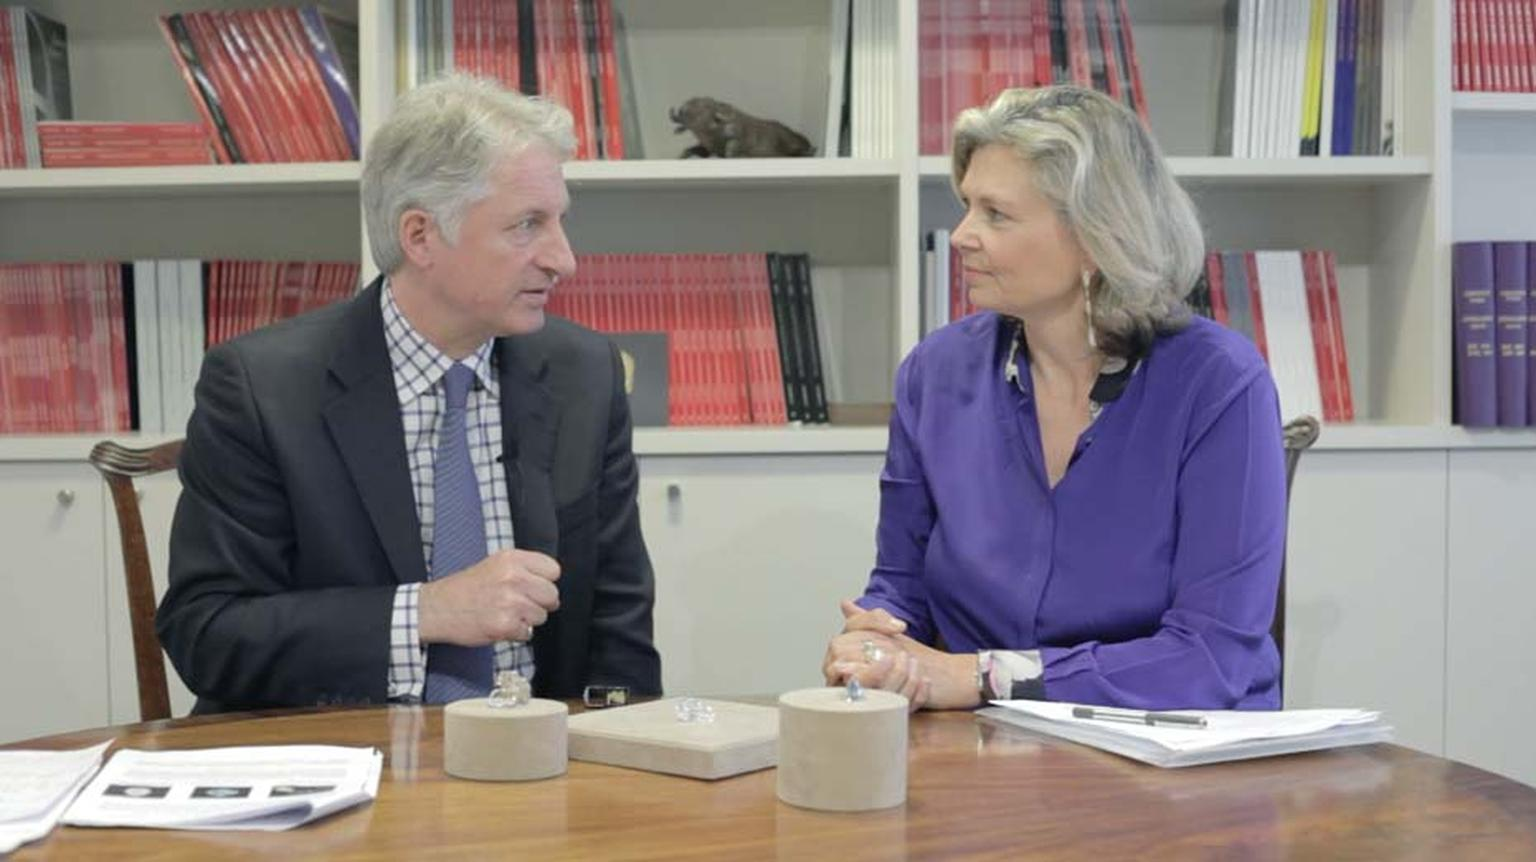 In our latest video, Maria Doulton sits down with David Warren, Christie's International Director of Jewellery, to talk about 'The Blue' and some of the other impressive diamonds coming under the hammer next month